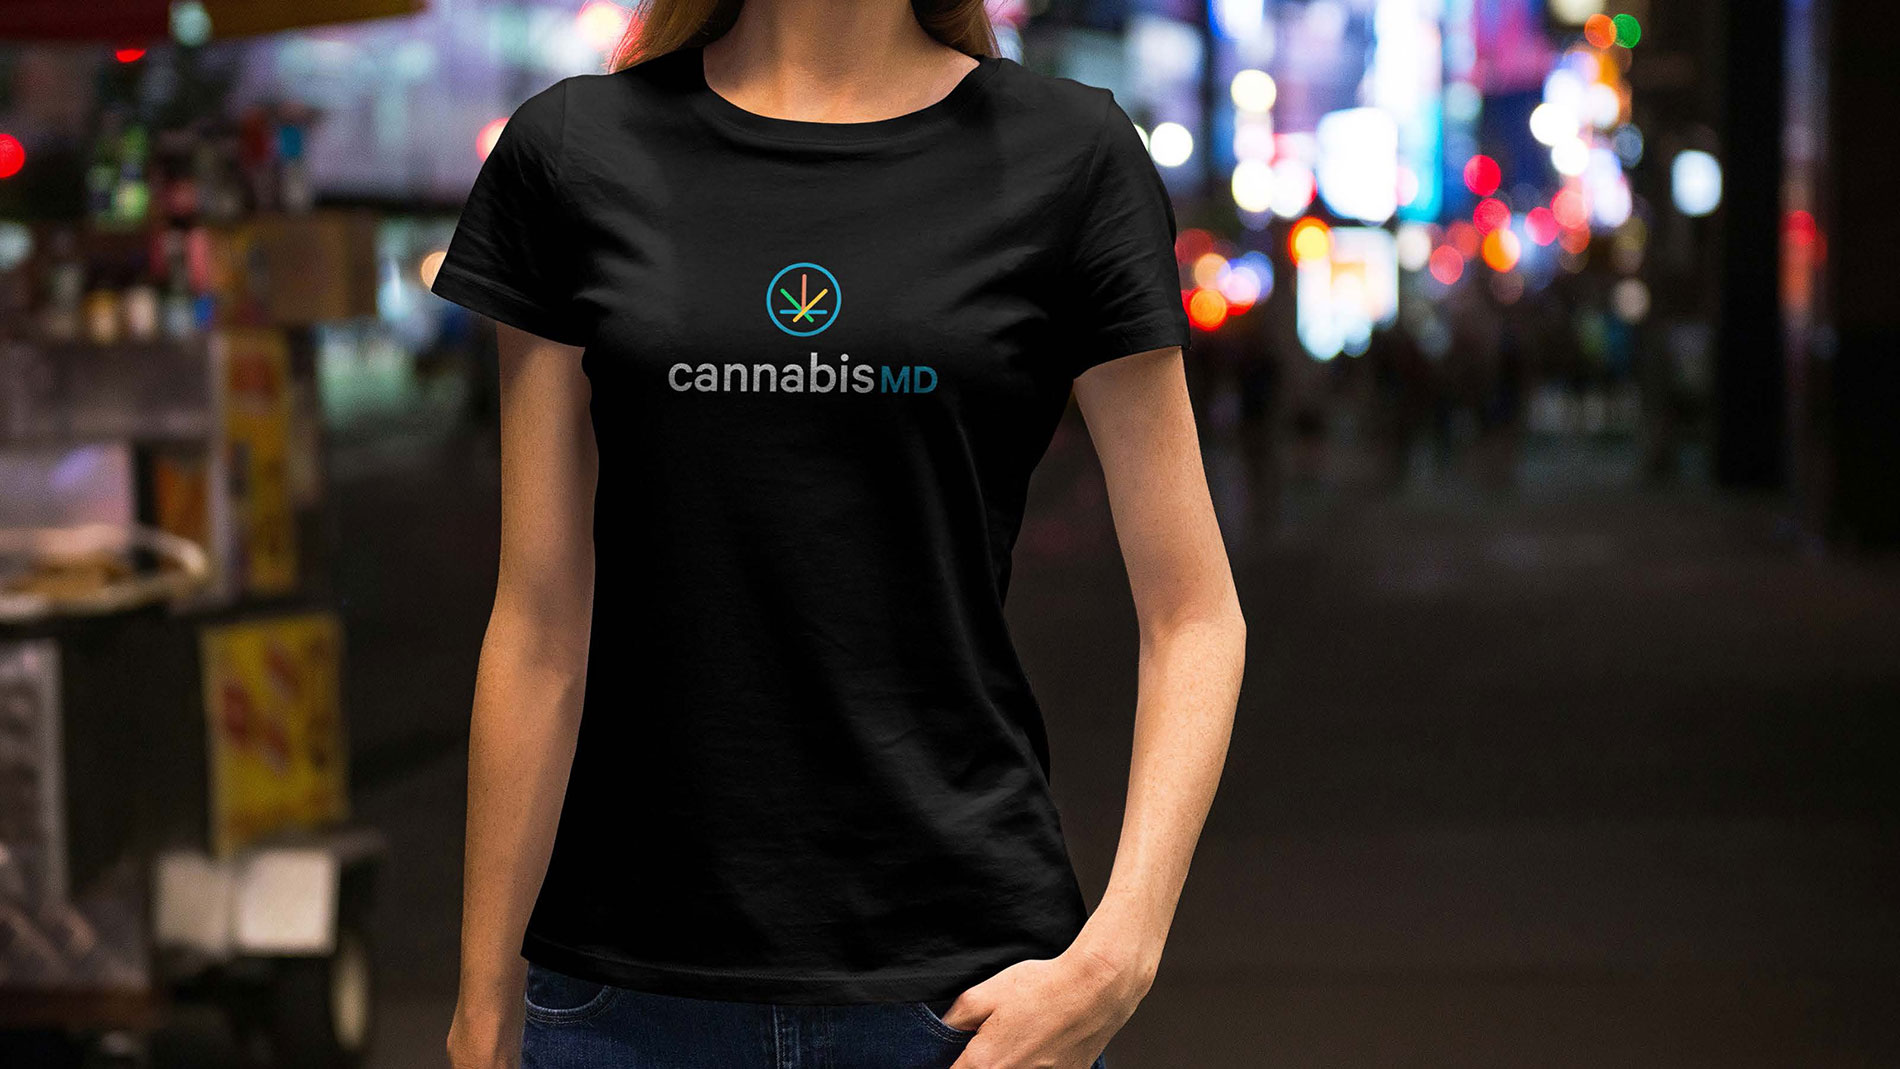 cannabisMD informing people about the potential of cannabis